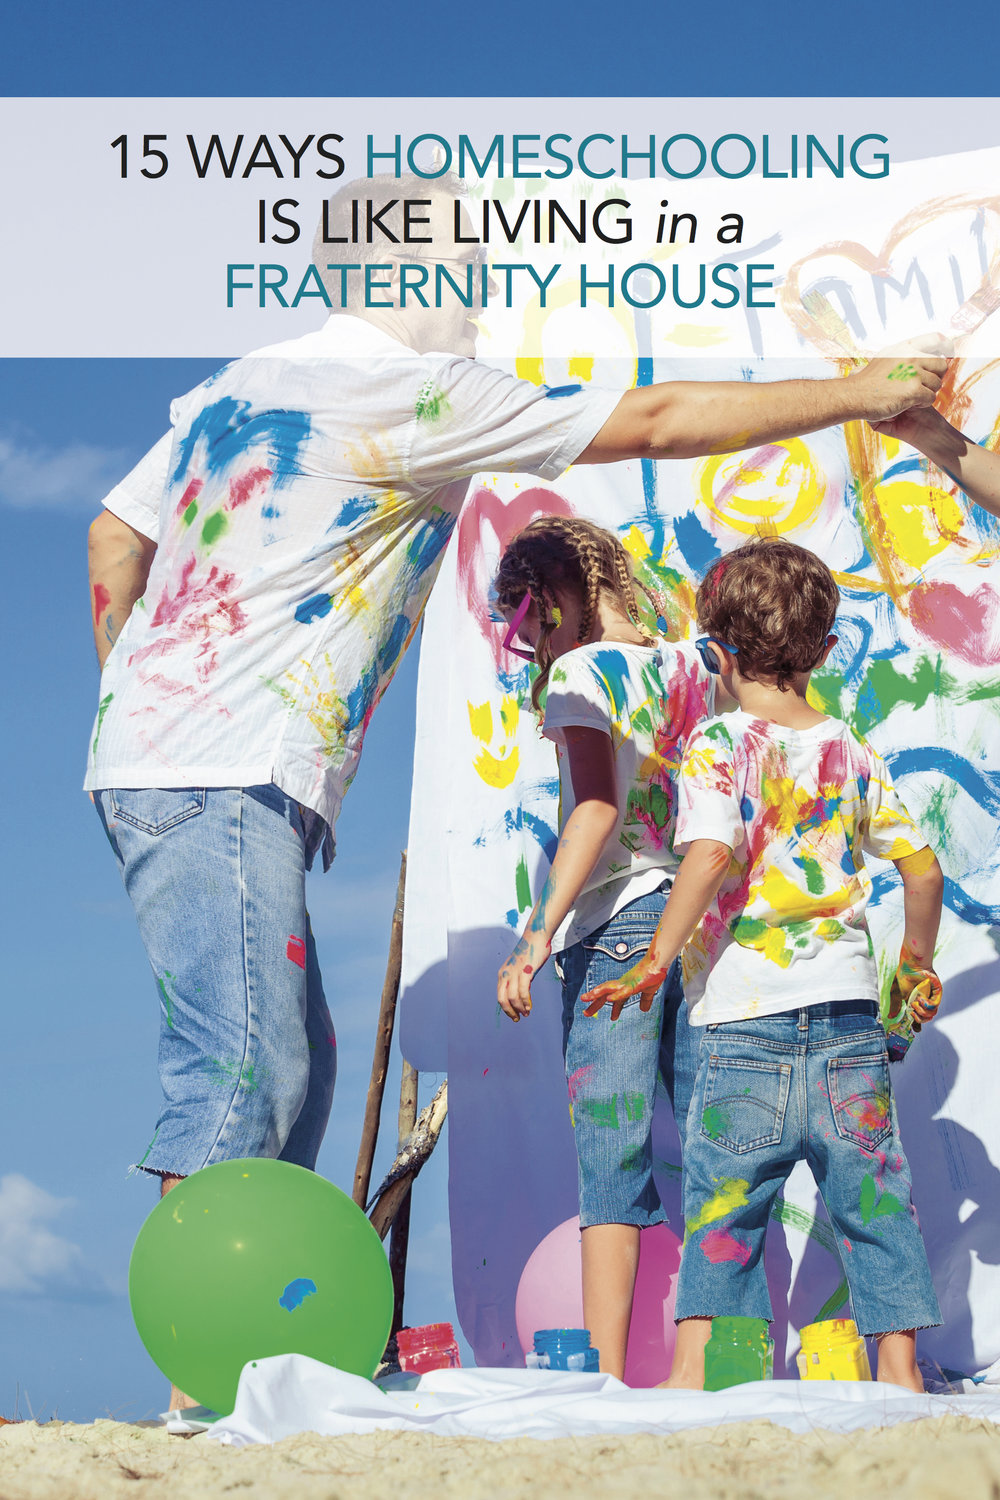 15 Ways Homeschooling Is Like Living in a Fraternity House